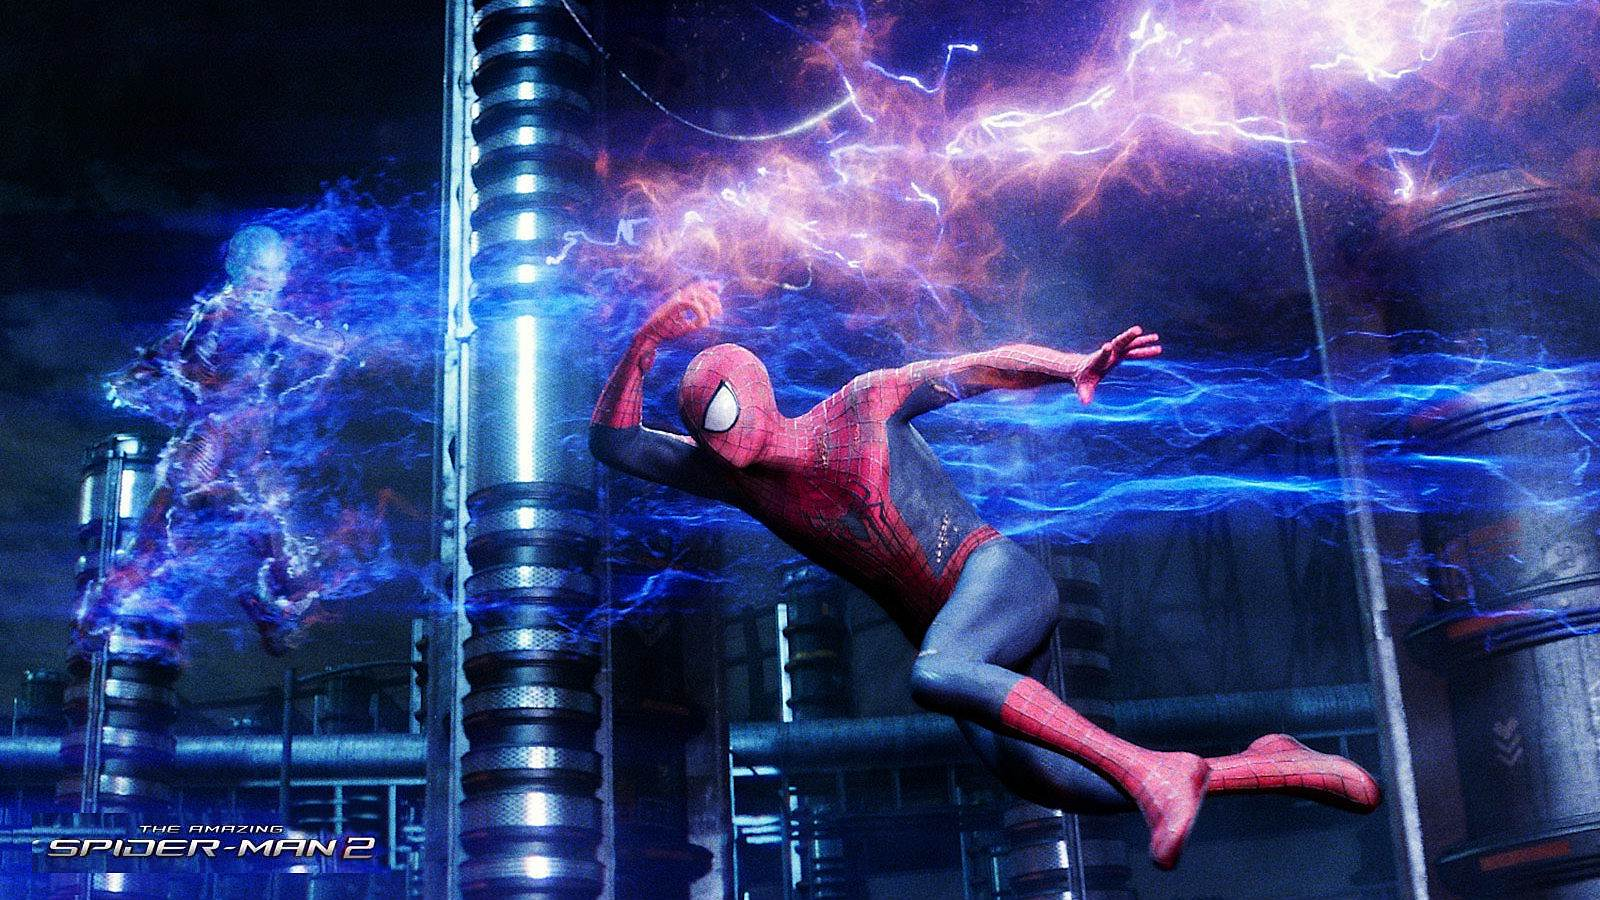 The Amazing Spiderman HD Wallpapers | Movie Stills - HD ...